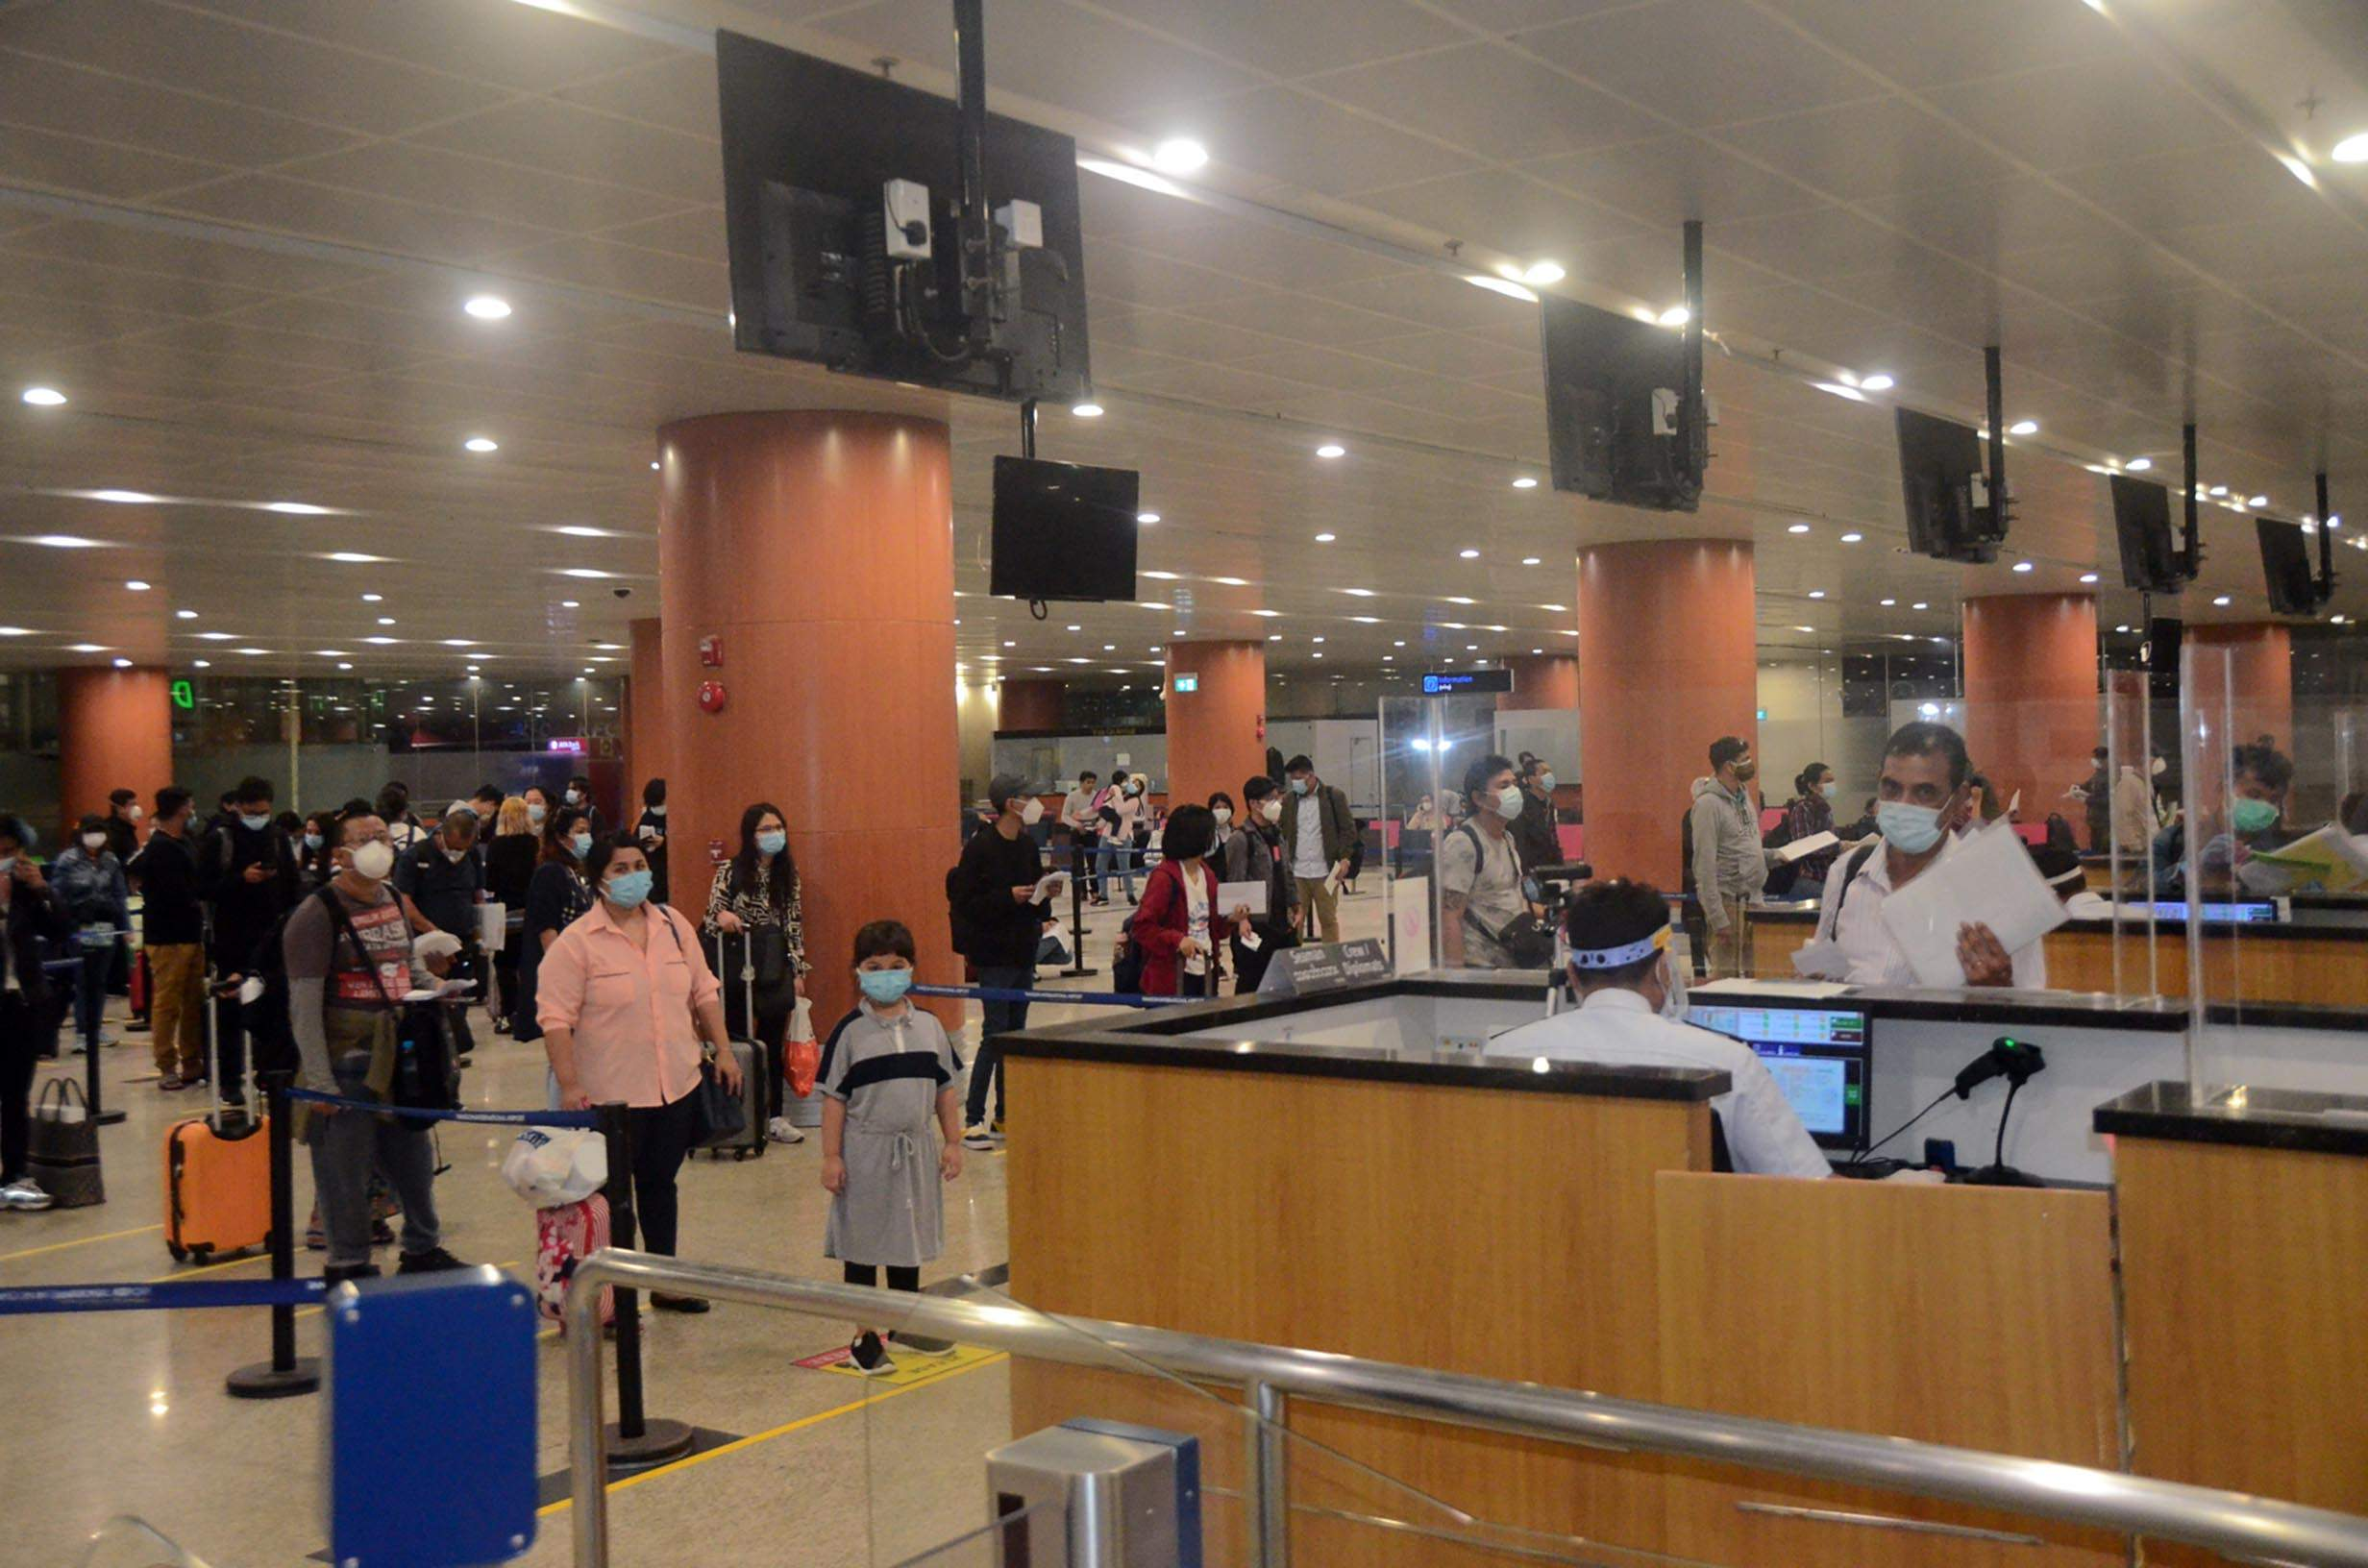 Myanmar nationals returned from Australia and Indonesia queue for immigration process at the Yangon International Airport on 20 July 2020.Photo: mna